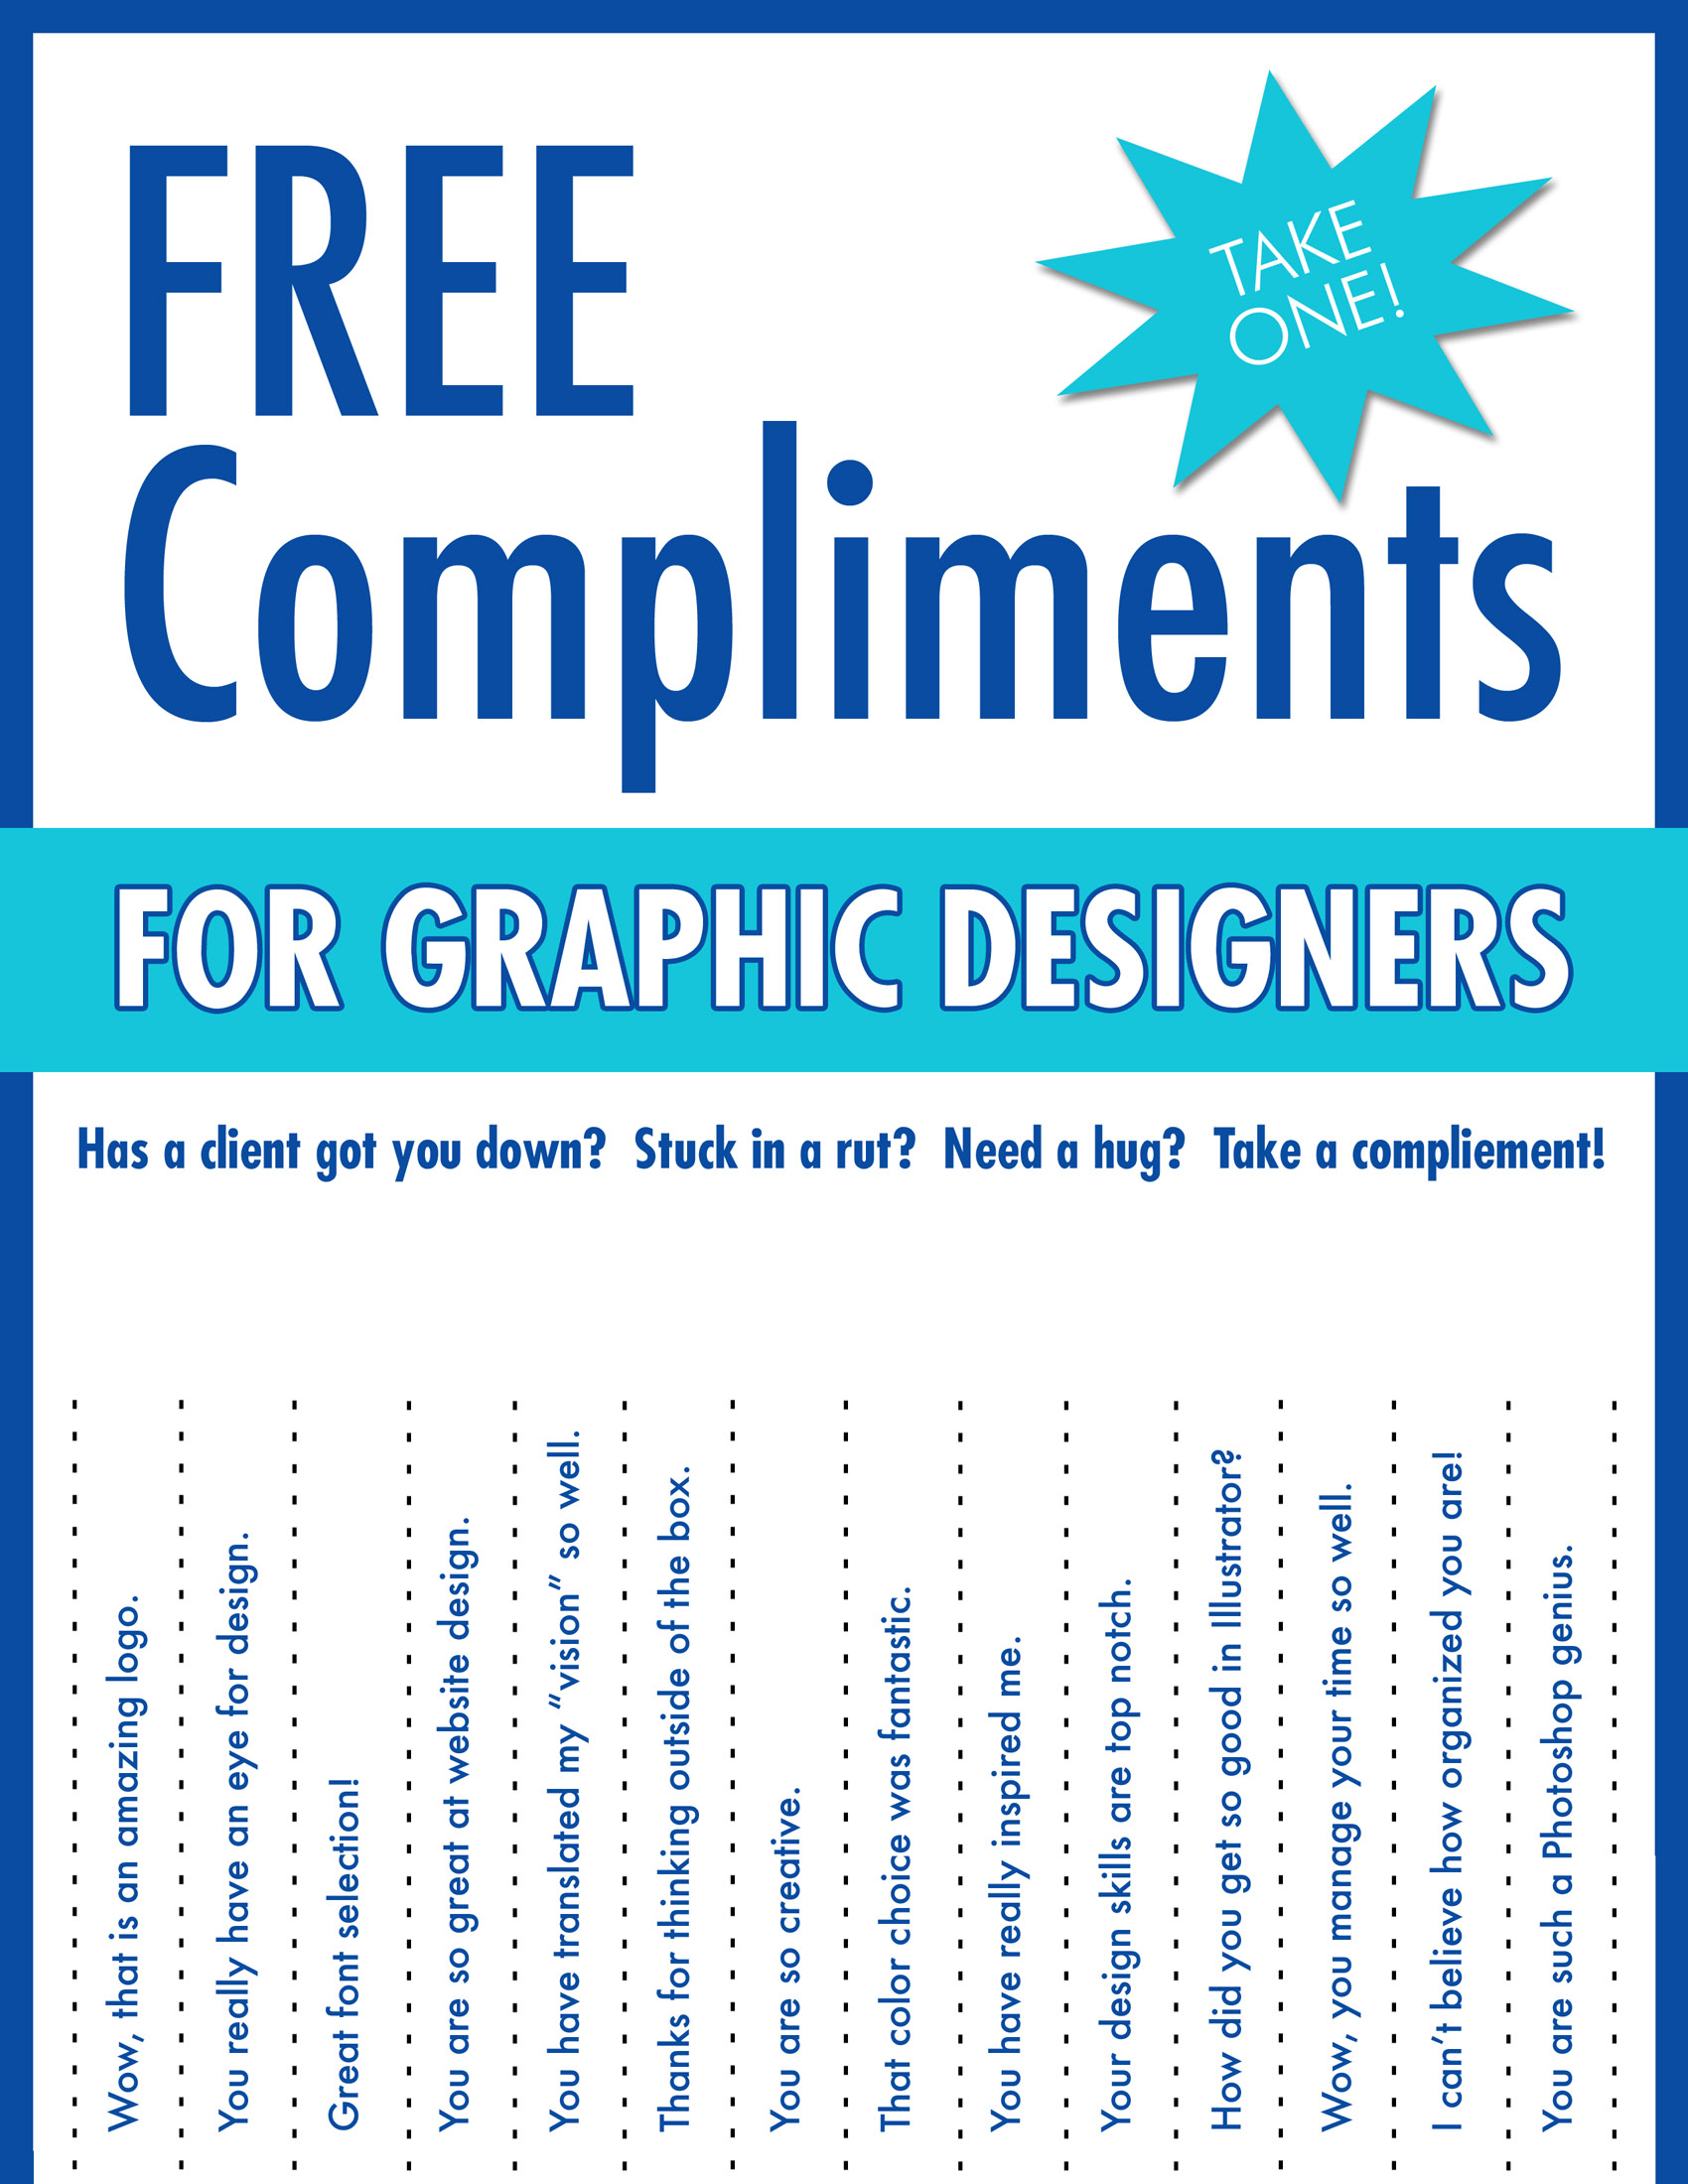 Free Compliments For Graphic Designers | thecreativestack